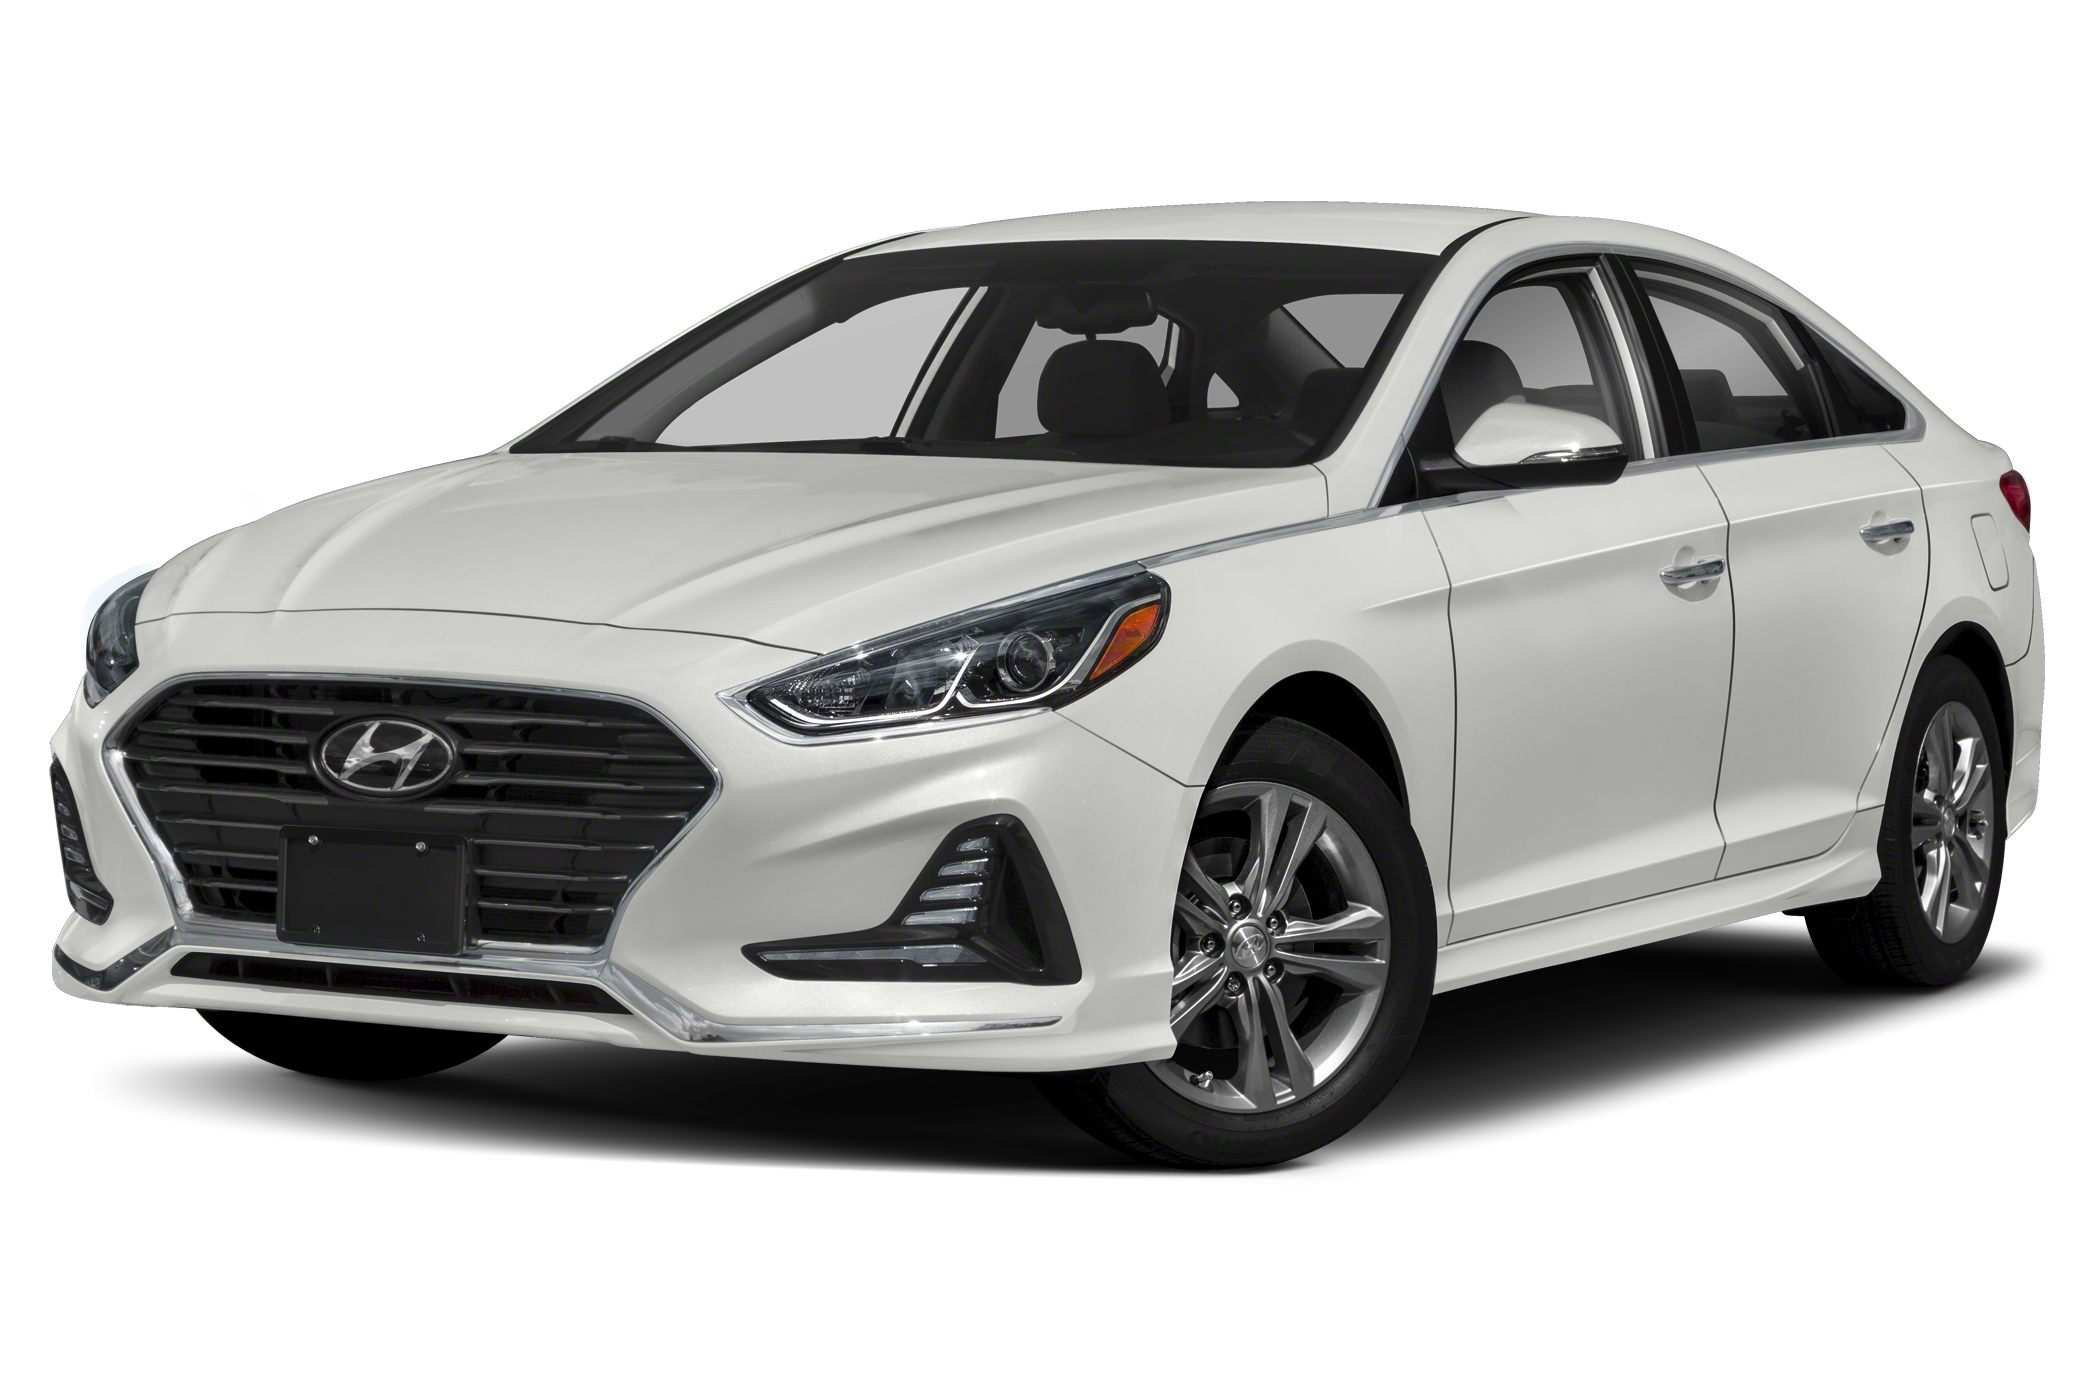 80 The 2019 Hyundai Sonata Review Reviews by 2019 Hyundai Sonata Review